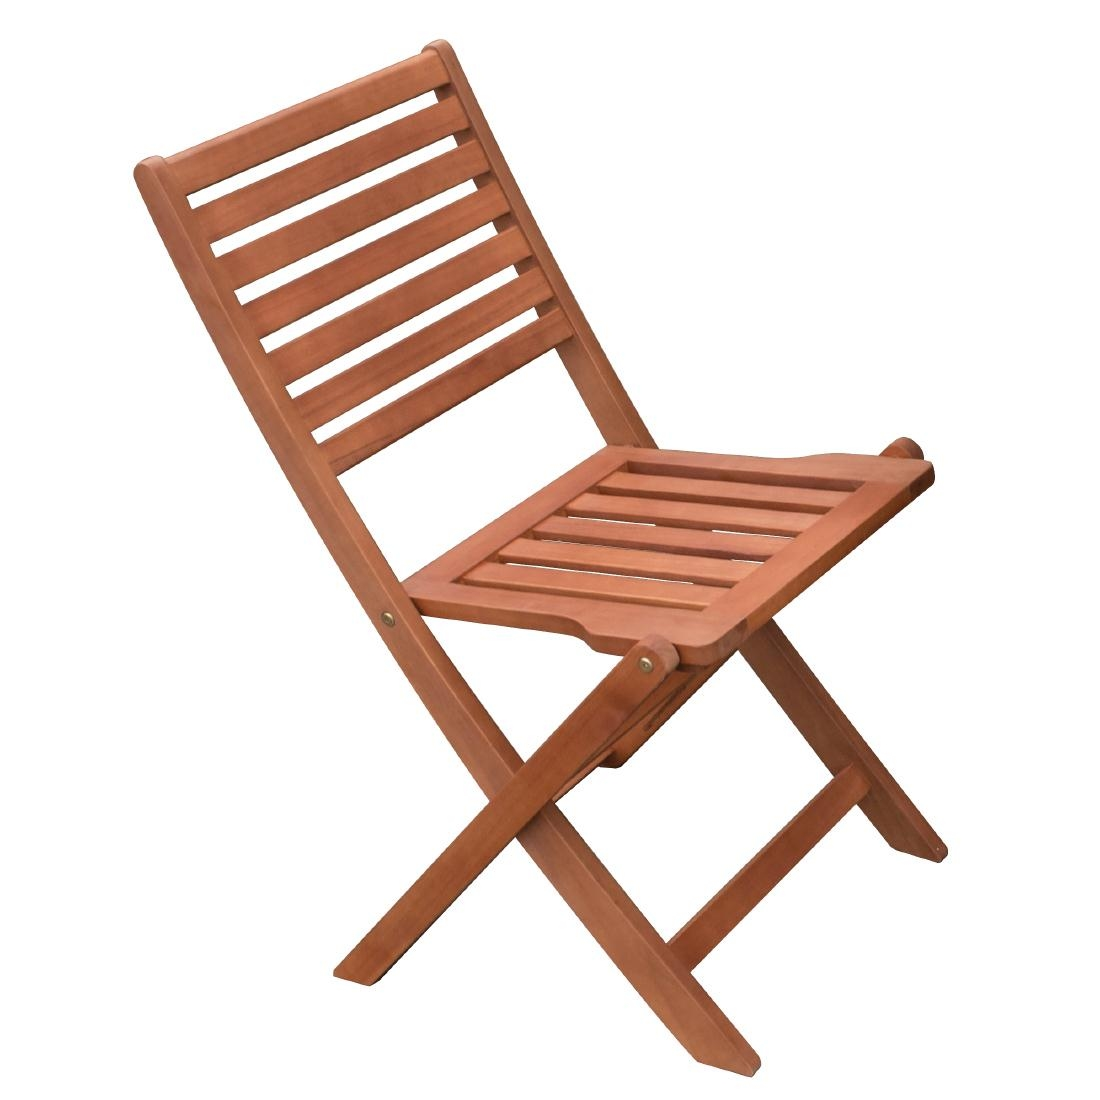 Outdoor Wooden Bolero Chair  sc 1 st  Blast Event Hire & Hire a Outdoor Wooden Bolero Chair - Chairs Furniture and Linen ...